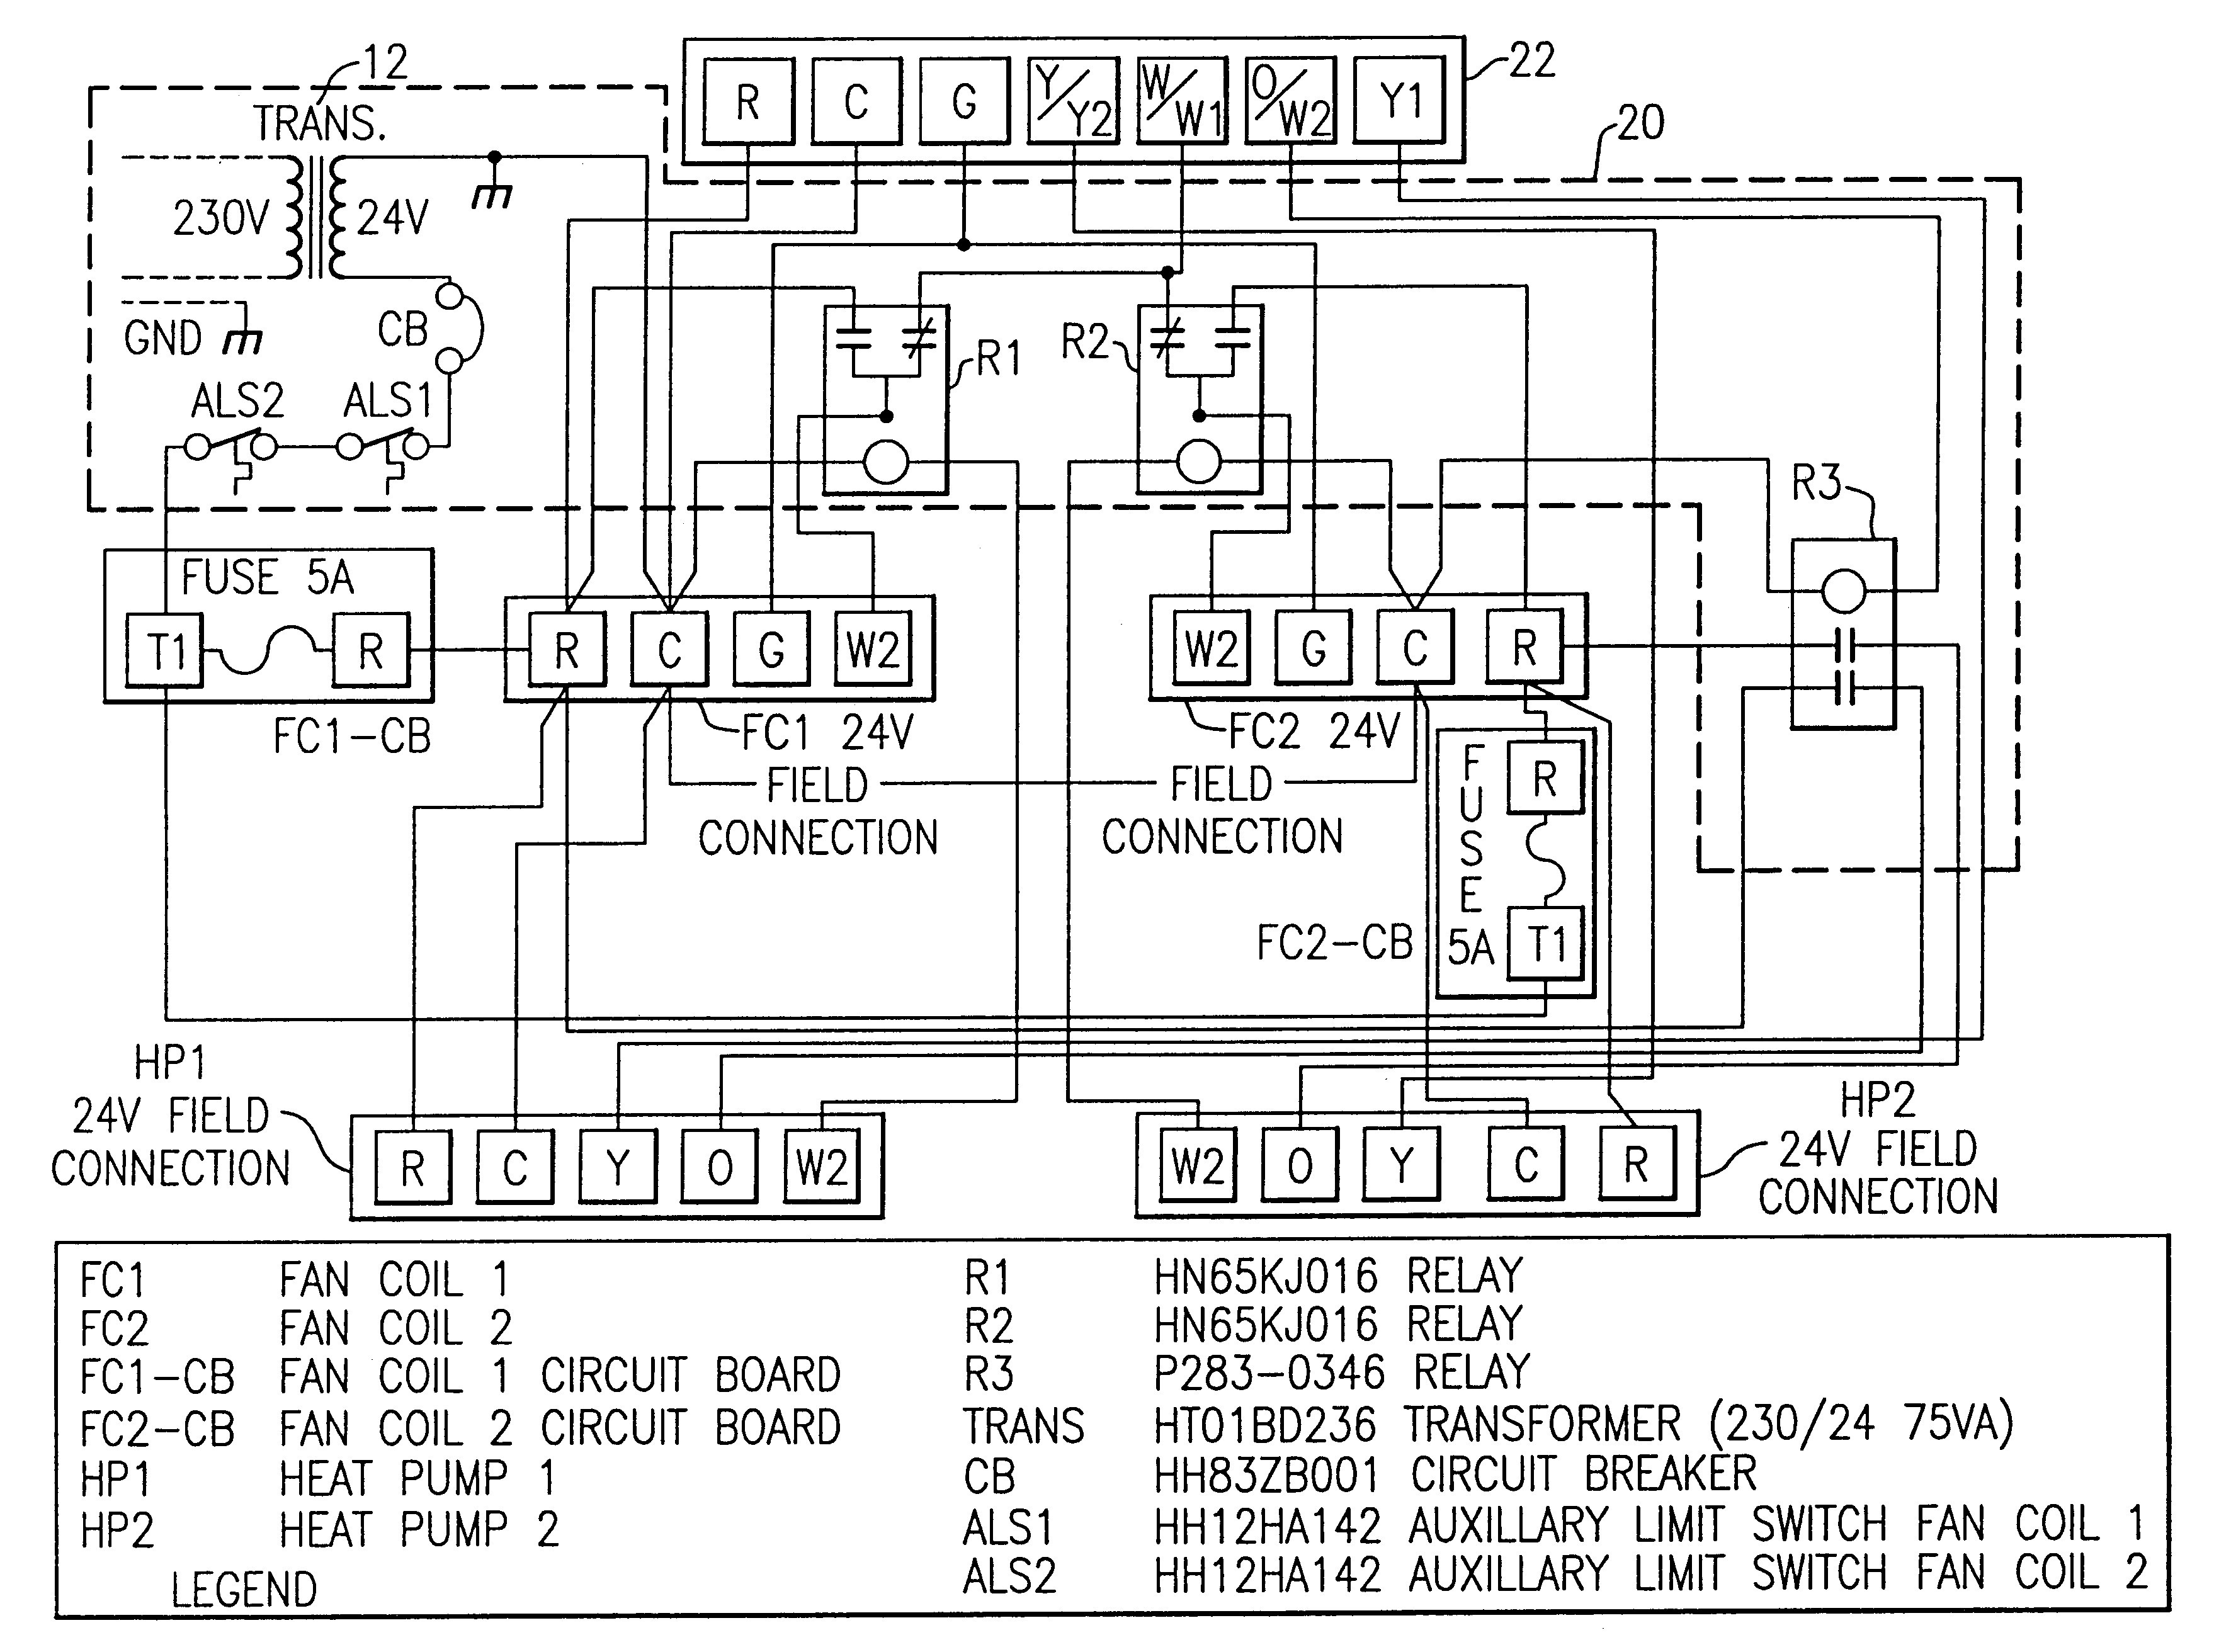 york rooftop unit wiring diagram Download-Wiring Diagram for Heating System Save York Rooftop Unit Wiring Diagram Elegant York Wiring Diagrams Wiring 8-n